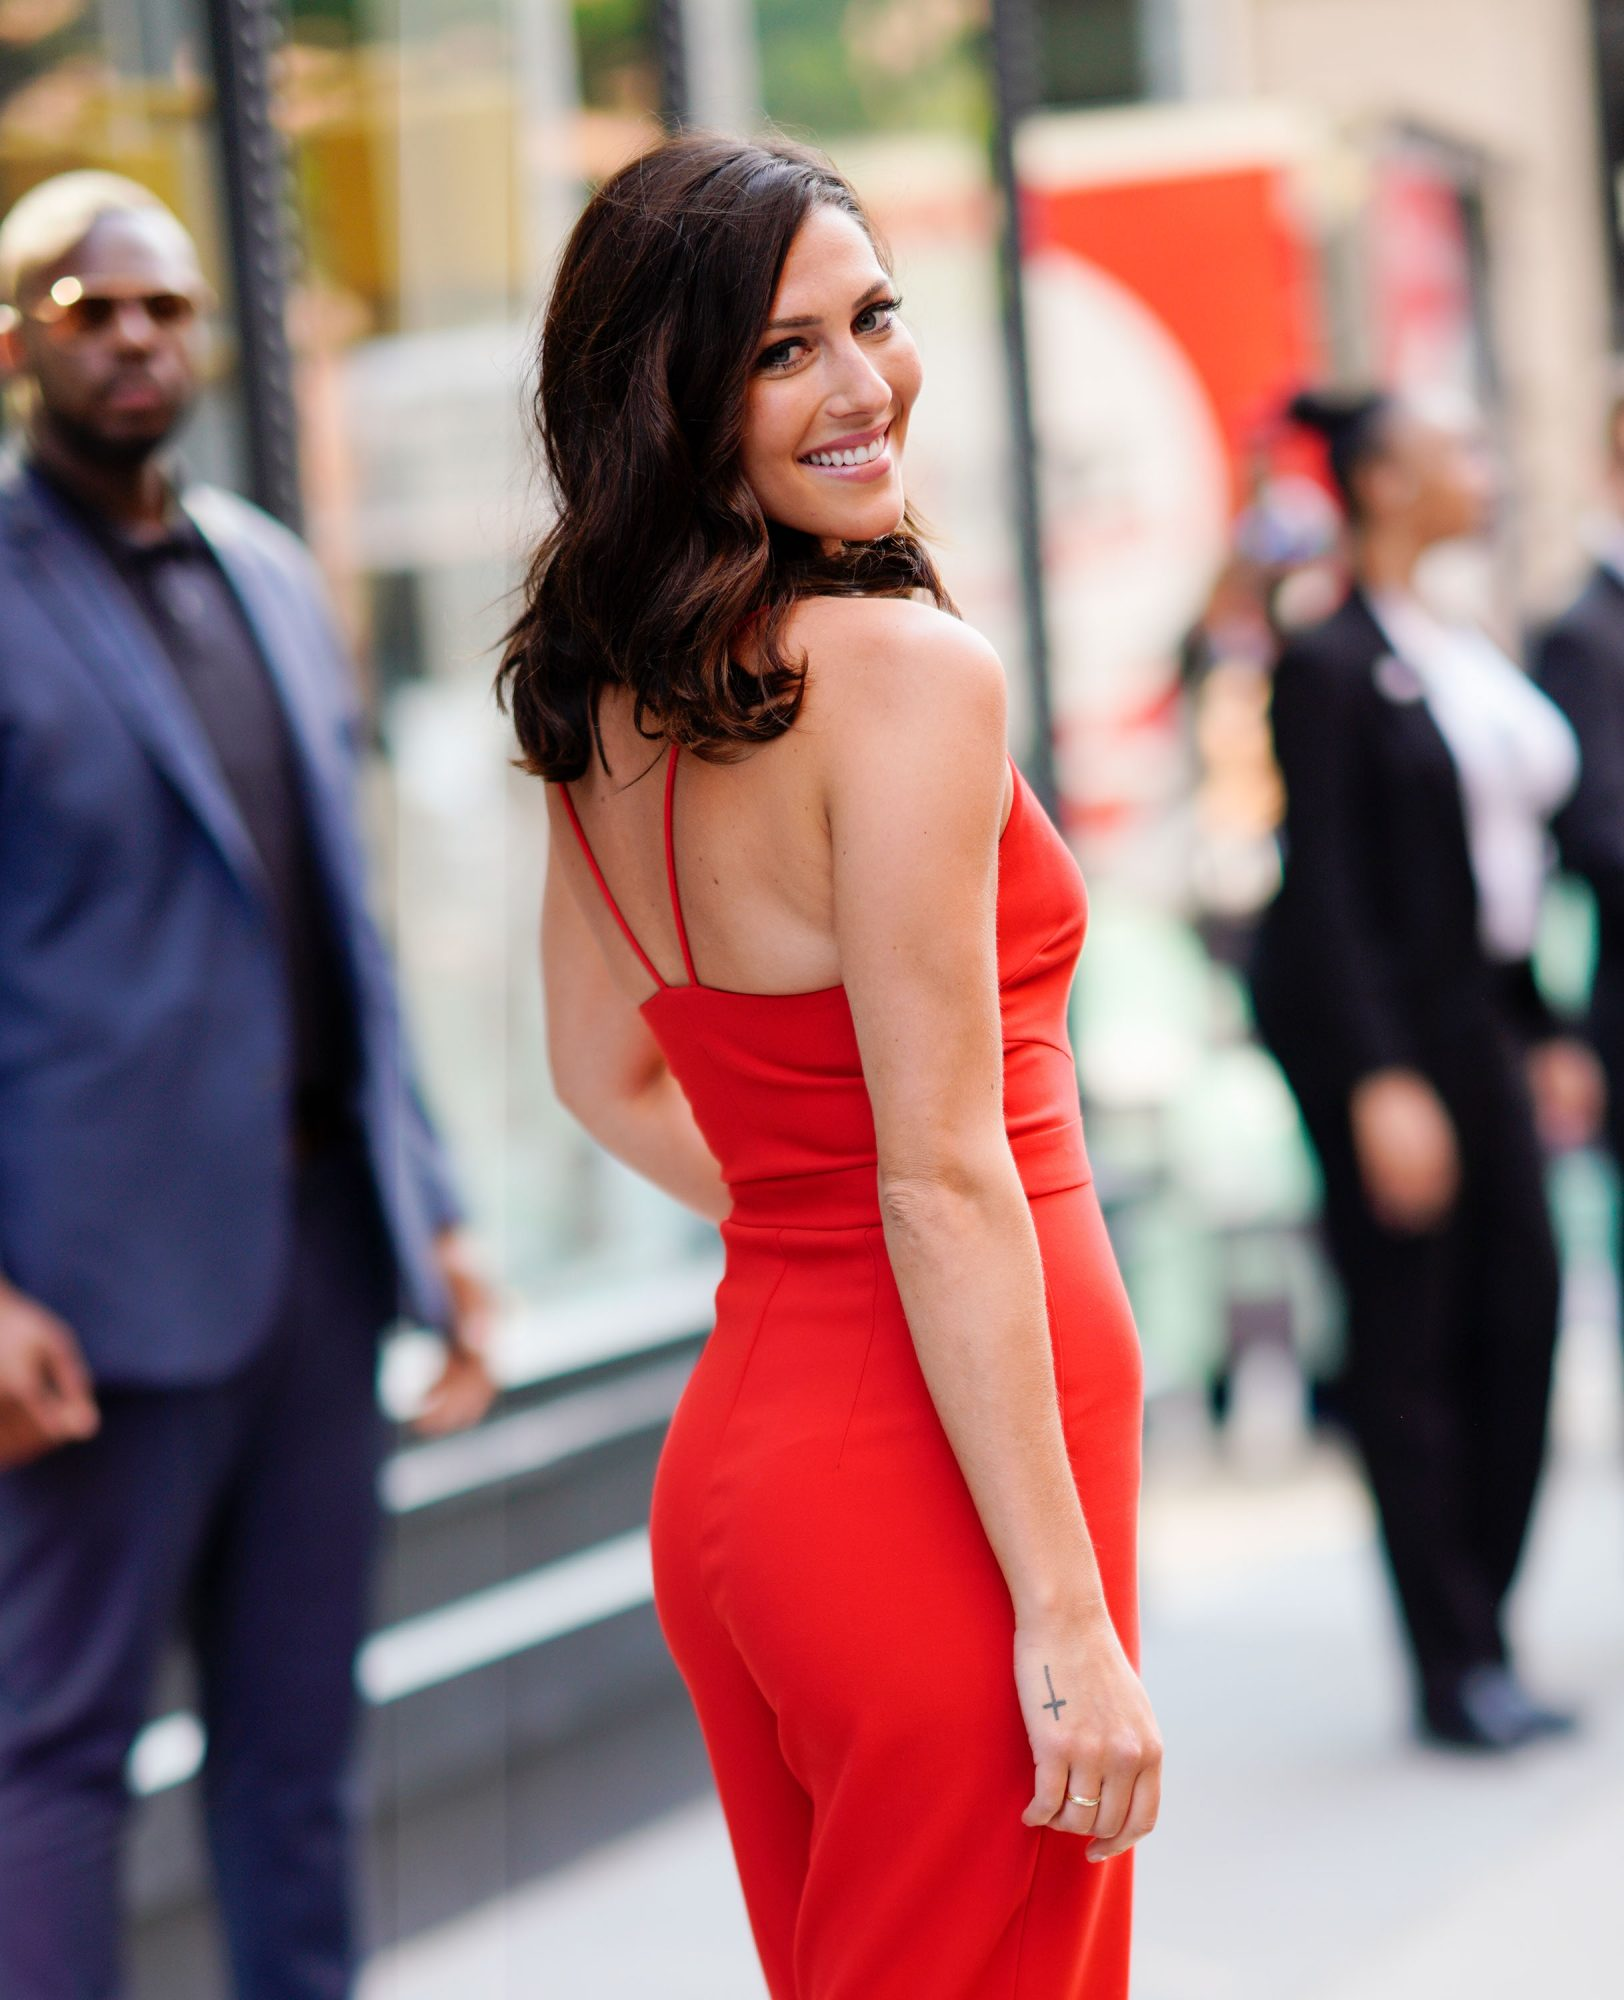 'Bachelorette' Star Becca Kufrin Uses the Best Foundation for Heat and Humidity